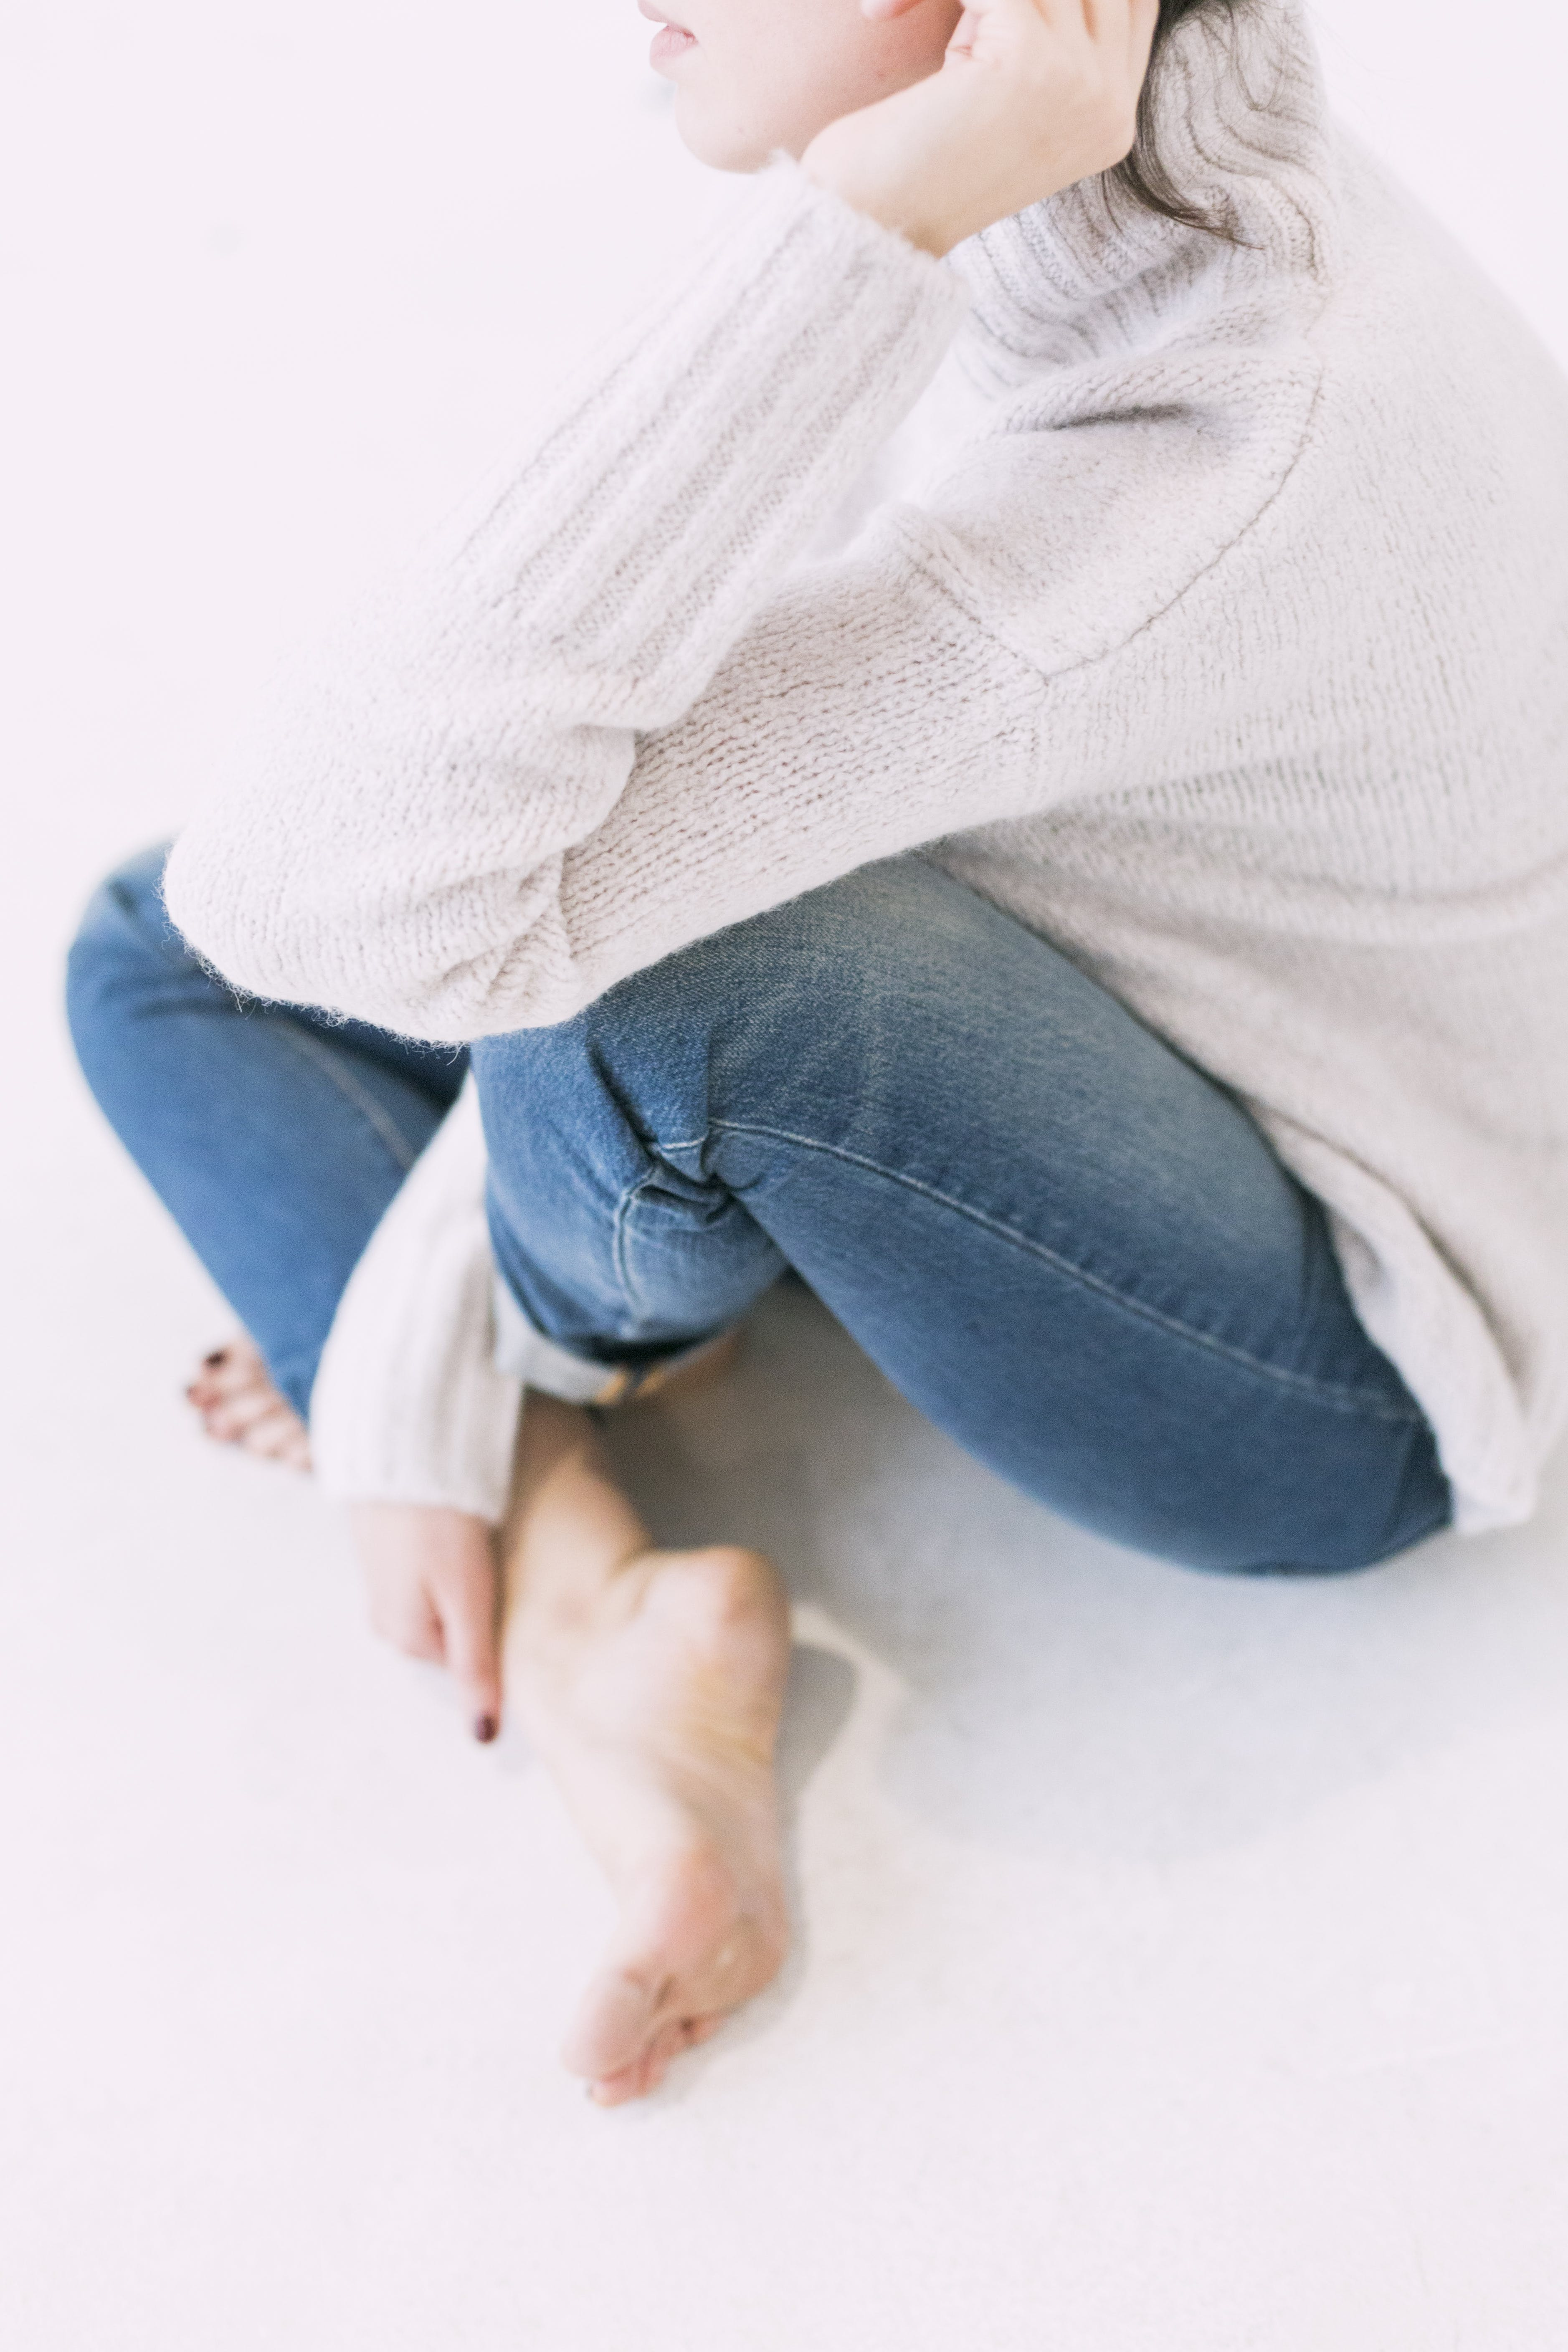 Woman in Gray Sweater and Blue Denim Jeans